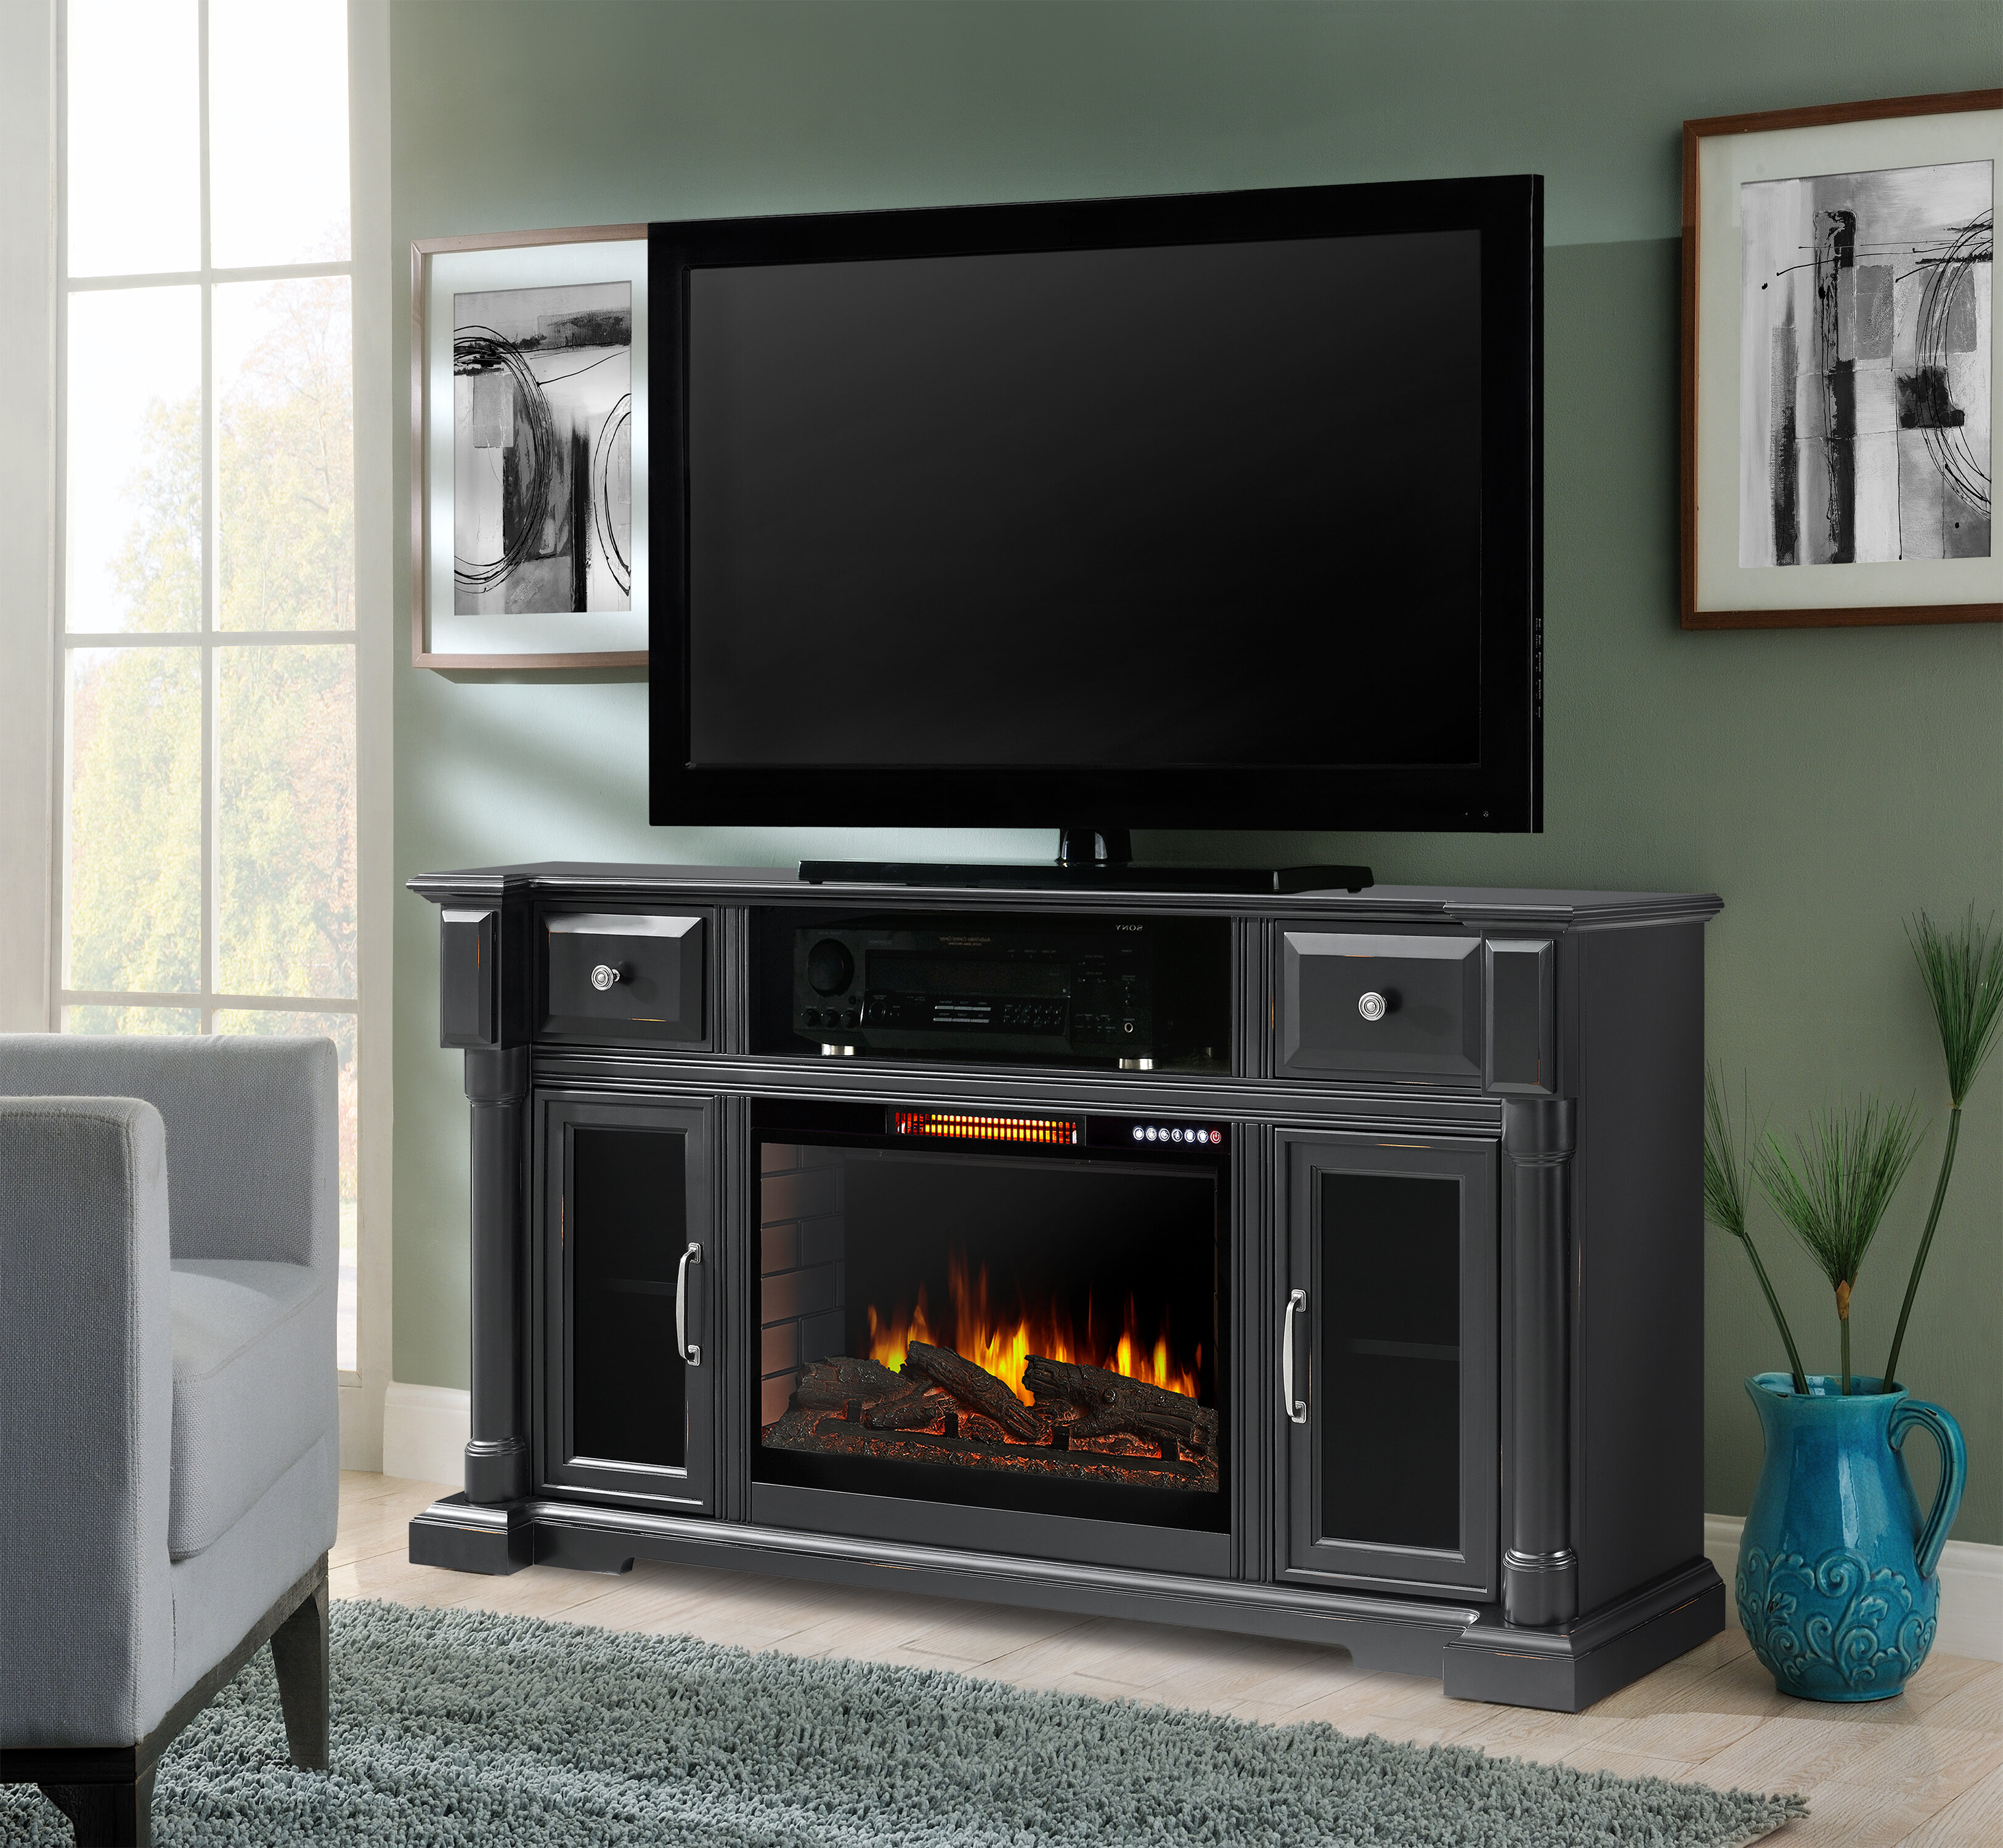 Muskoka Vermont Tv Stand For Tvs Up To 65 With Electric Fireplace Included Reviews Wayfair Ca